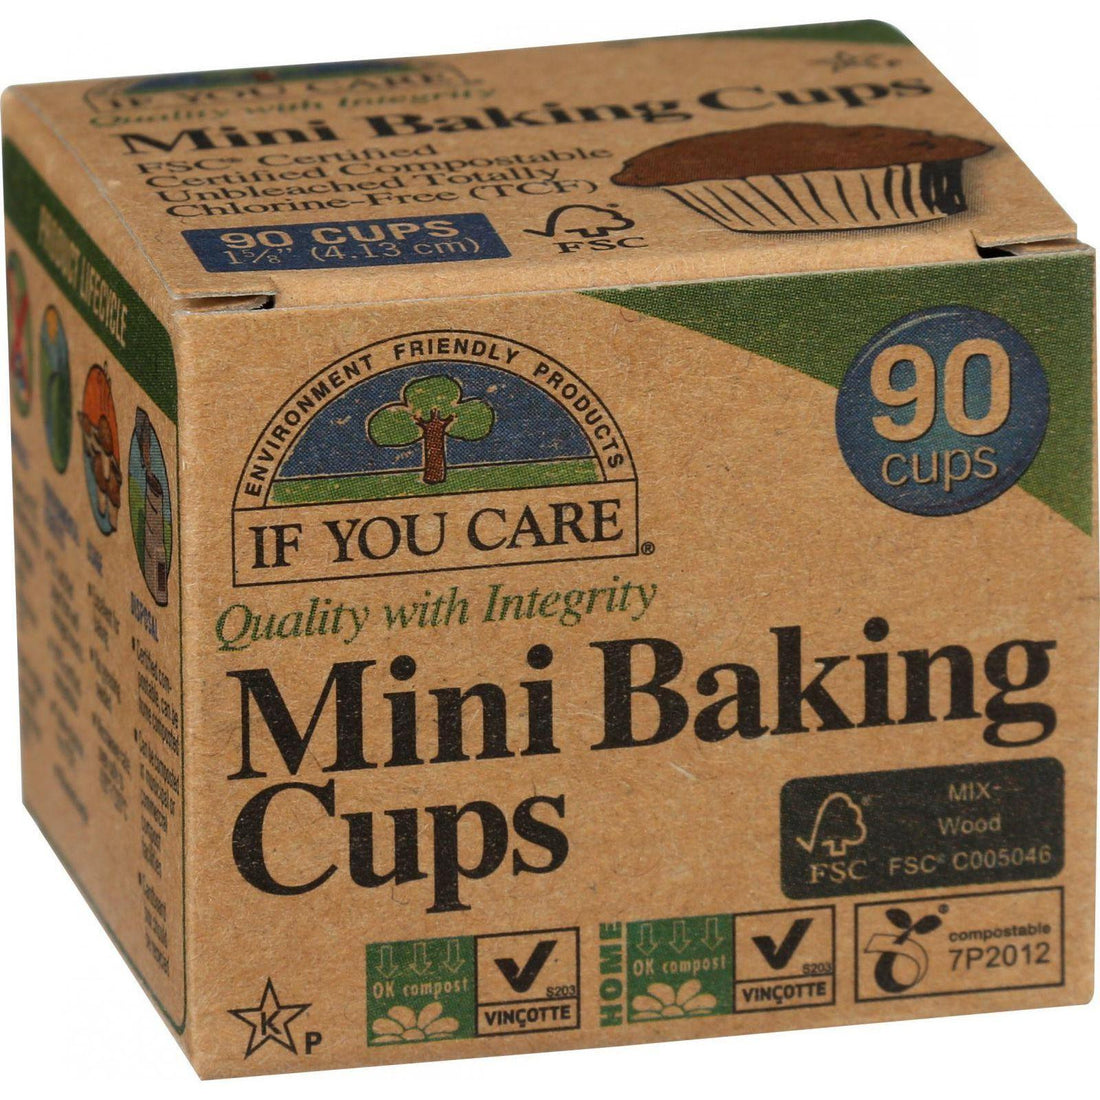 Mother Mantis: If You Care Baking Cups - Mini - Unbleached Totally Chlorine Free - 90 Count If You Care